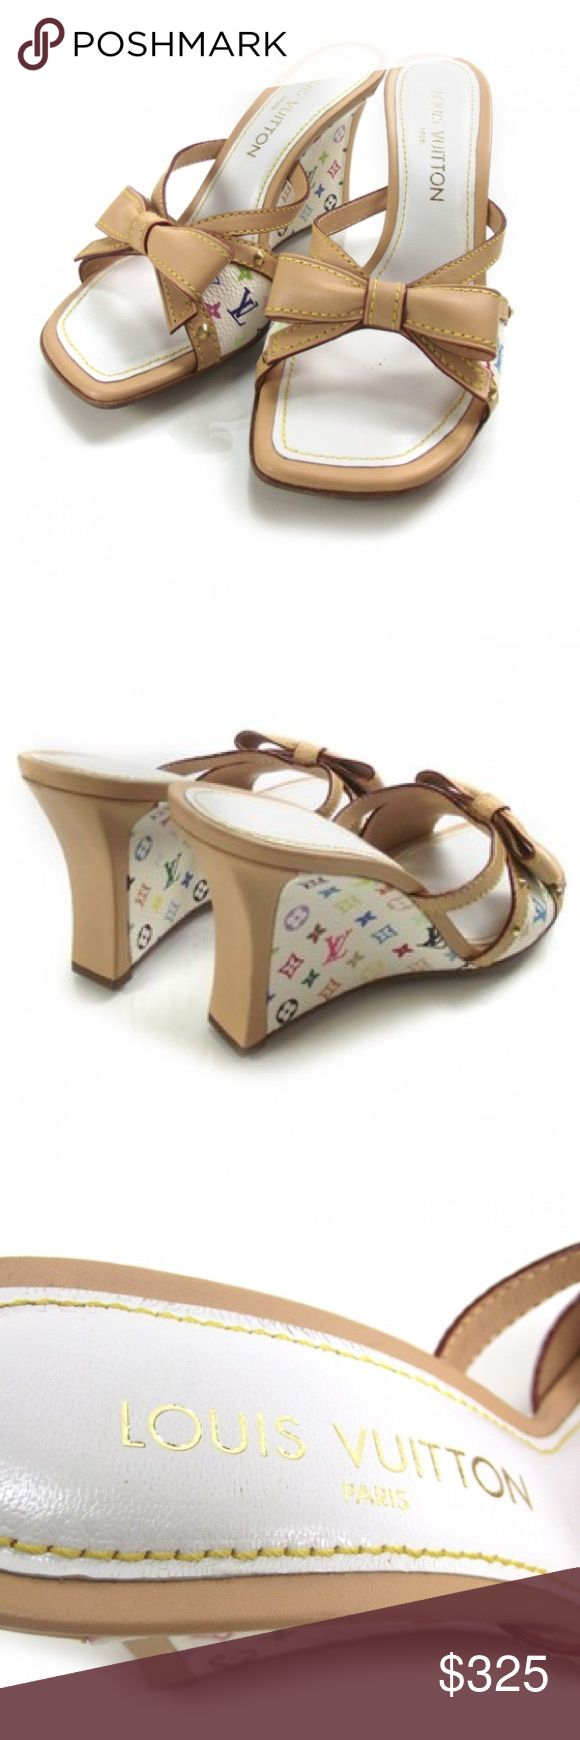 """Louis Vuitton White Multicolor Wedge size 41 Louis Vuitton New Black Multicolor Wedges with Leather Trim and Bow  Made in Italy c. 2004 Insole stamped """"LOUIS VUITTON"""" """"PARIS"""" Leather stamped """"MADE IN ITALY"""" Materials: Canvas and leather trim and bow Sole stamped with LV logo and """"41"""" 4"""" heel height  Marked size 41 estimated to fit US 9-9.5. Worn once Louis Vuitton Shoes Wedges"""